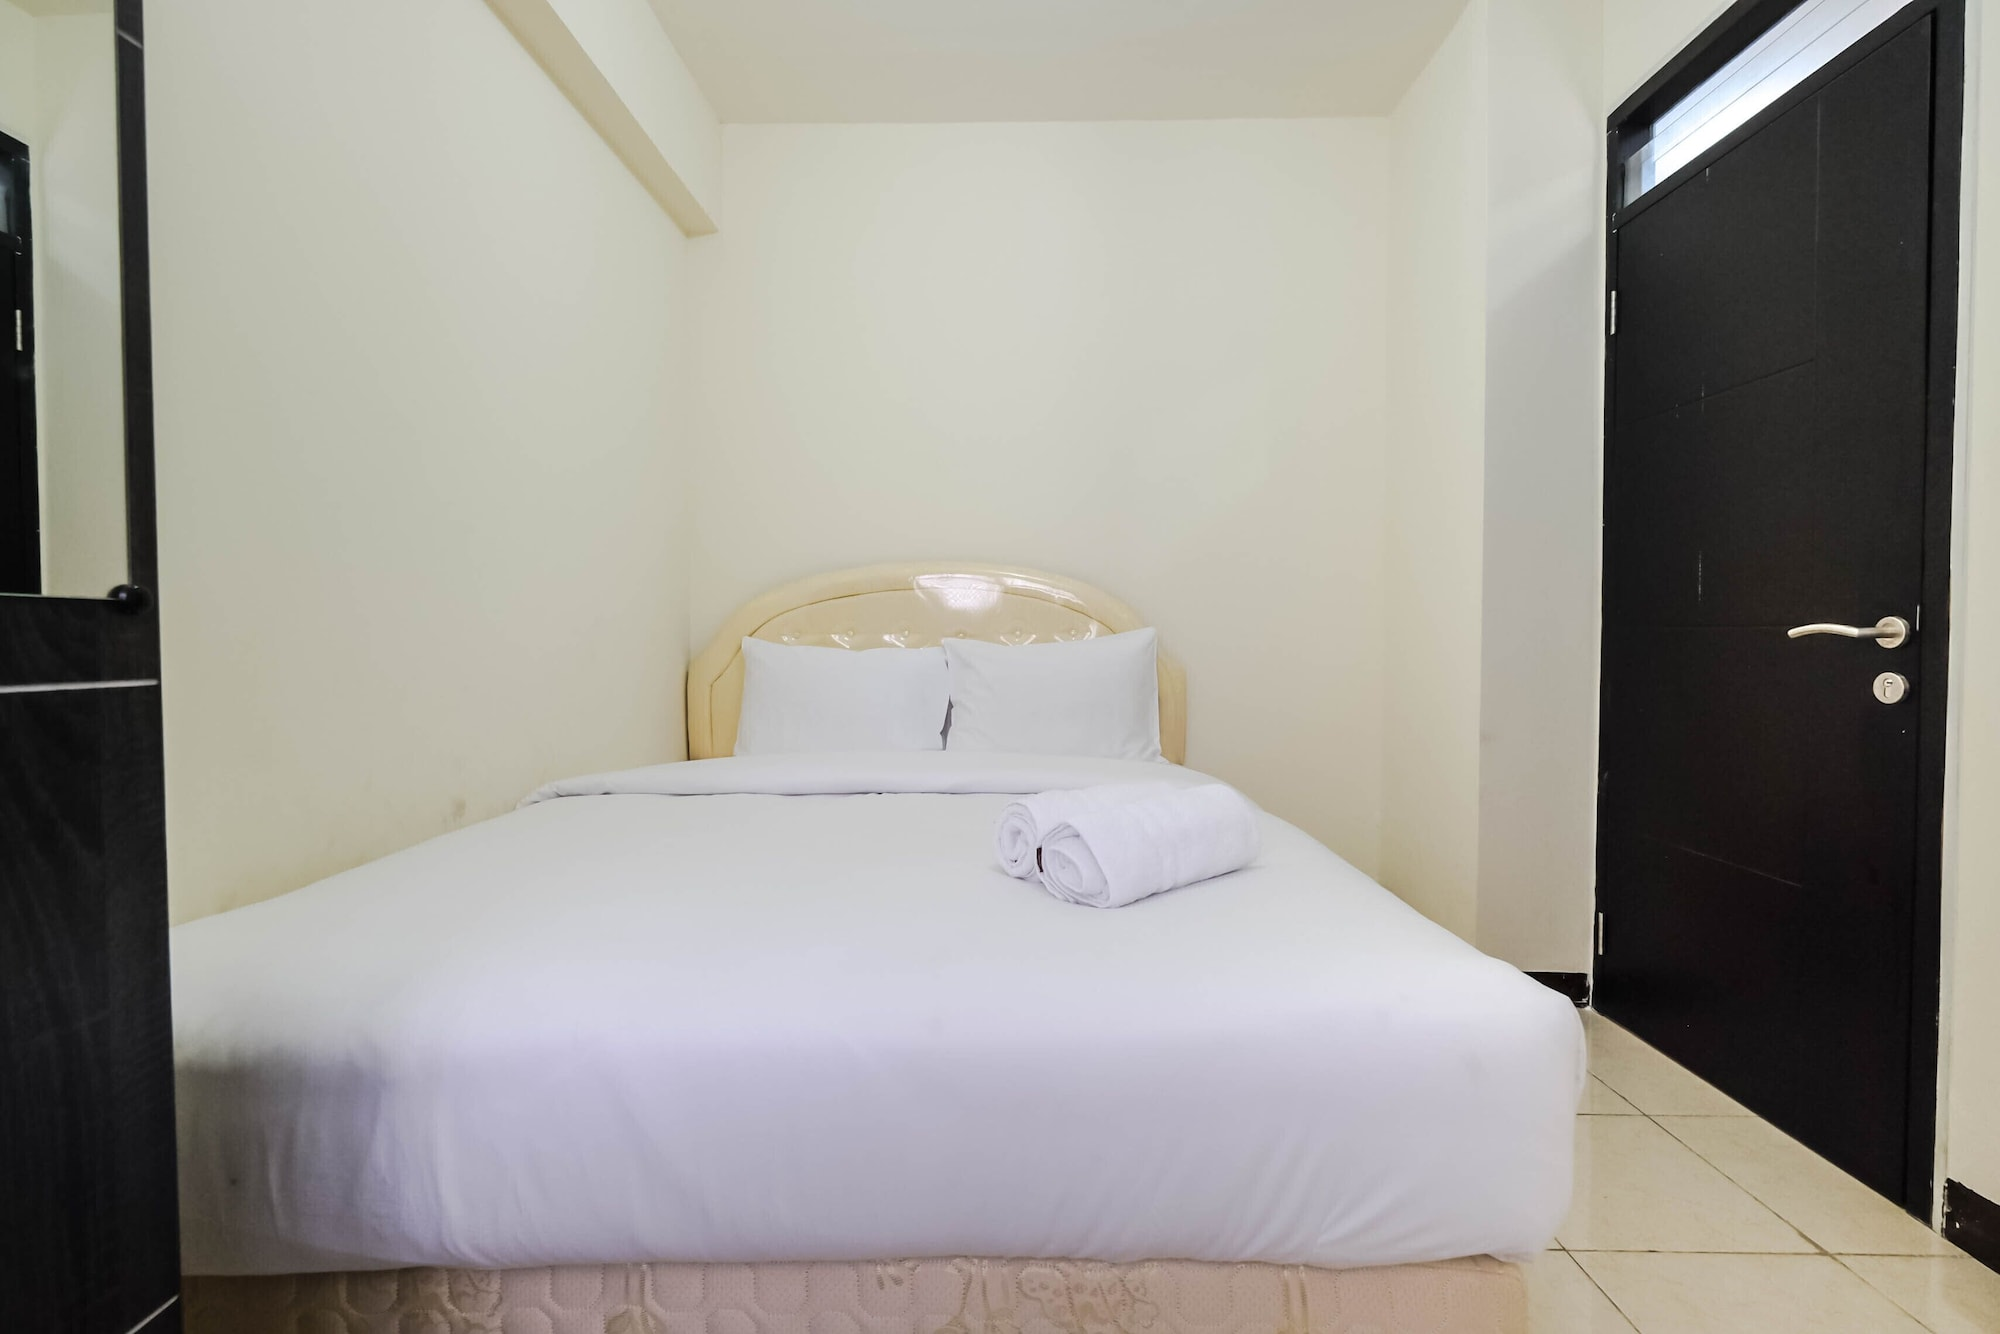 2BR Apartment with Sofa Bed at Casablanca East Residences, Jakarta Timur